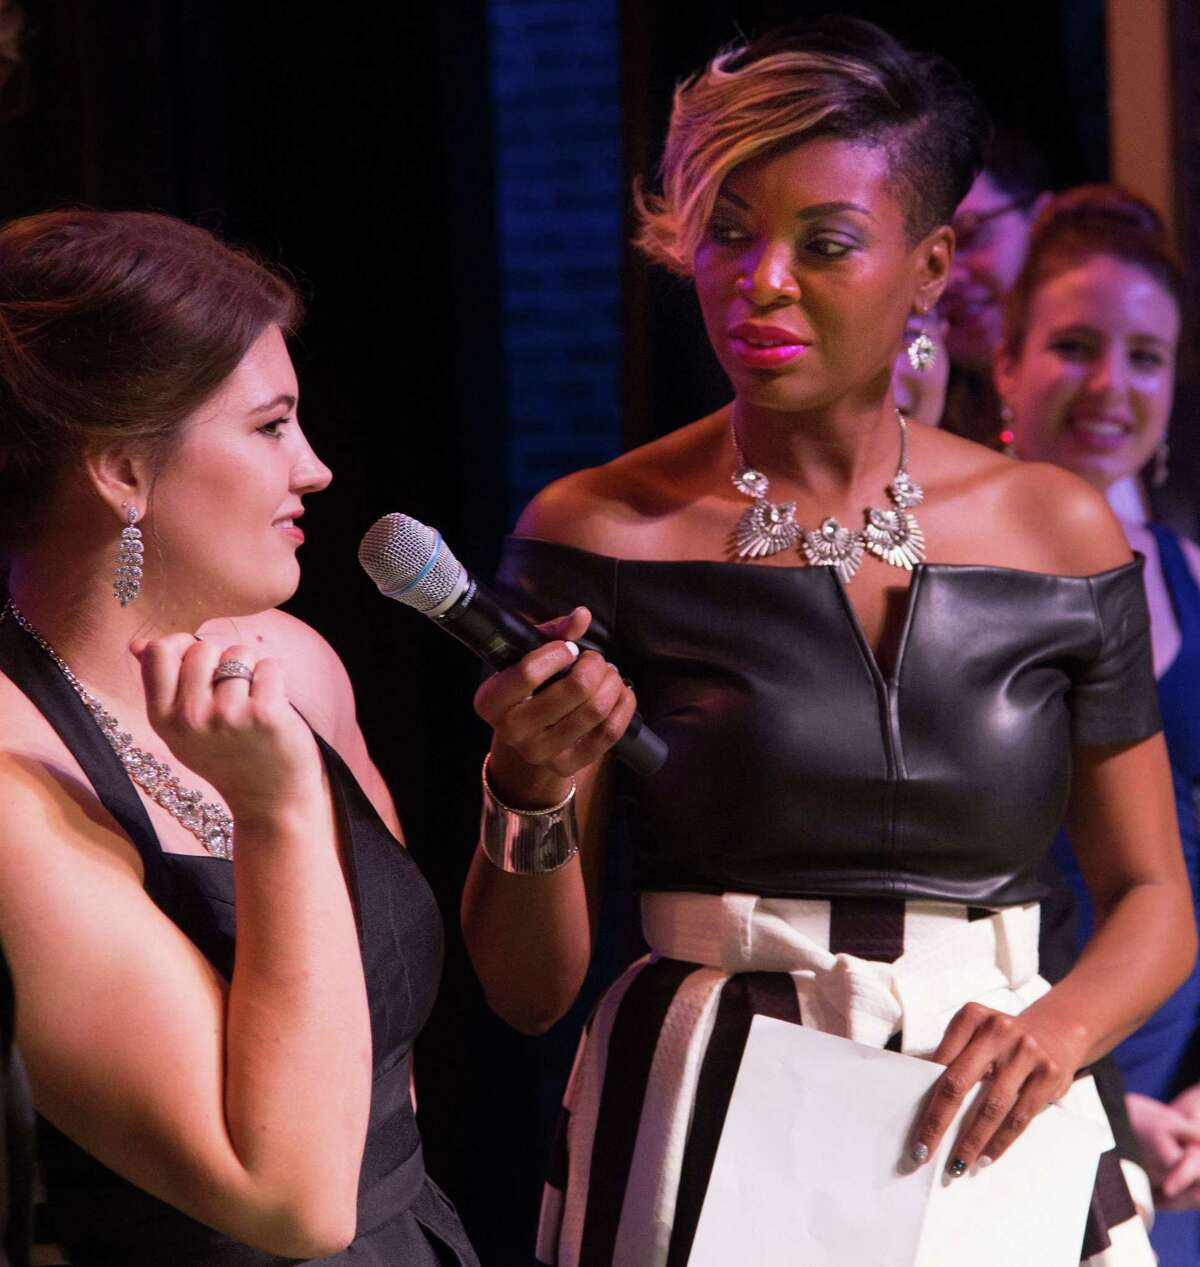 Mezzo-soprano Brennan Blankenship, who later received the gold medal for voice, answers an interview question from Mistress of Ceremonies Jade Simmons during the Young Texas Artists (YTA) 2019 Finalists Concert & Awards. The Silver Linings campaign will support YTA's efforts to provide competition winners cash prizes, performance opportunities and career development programs.